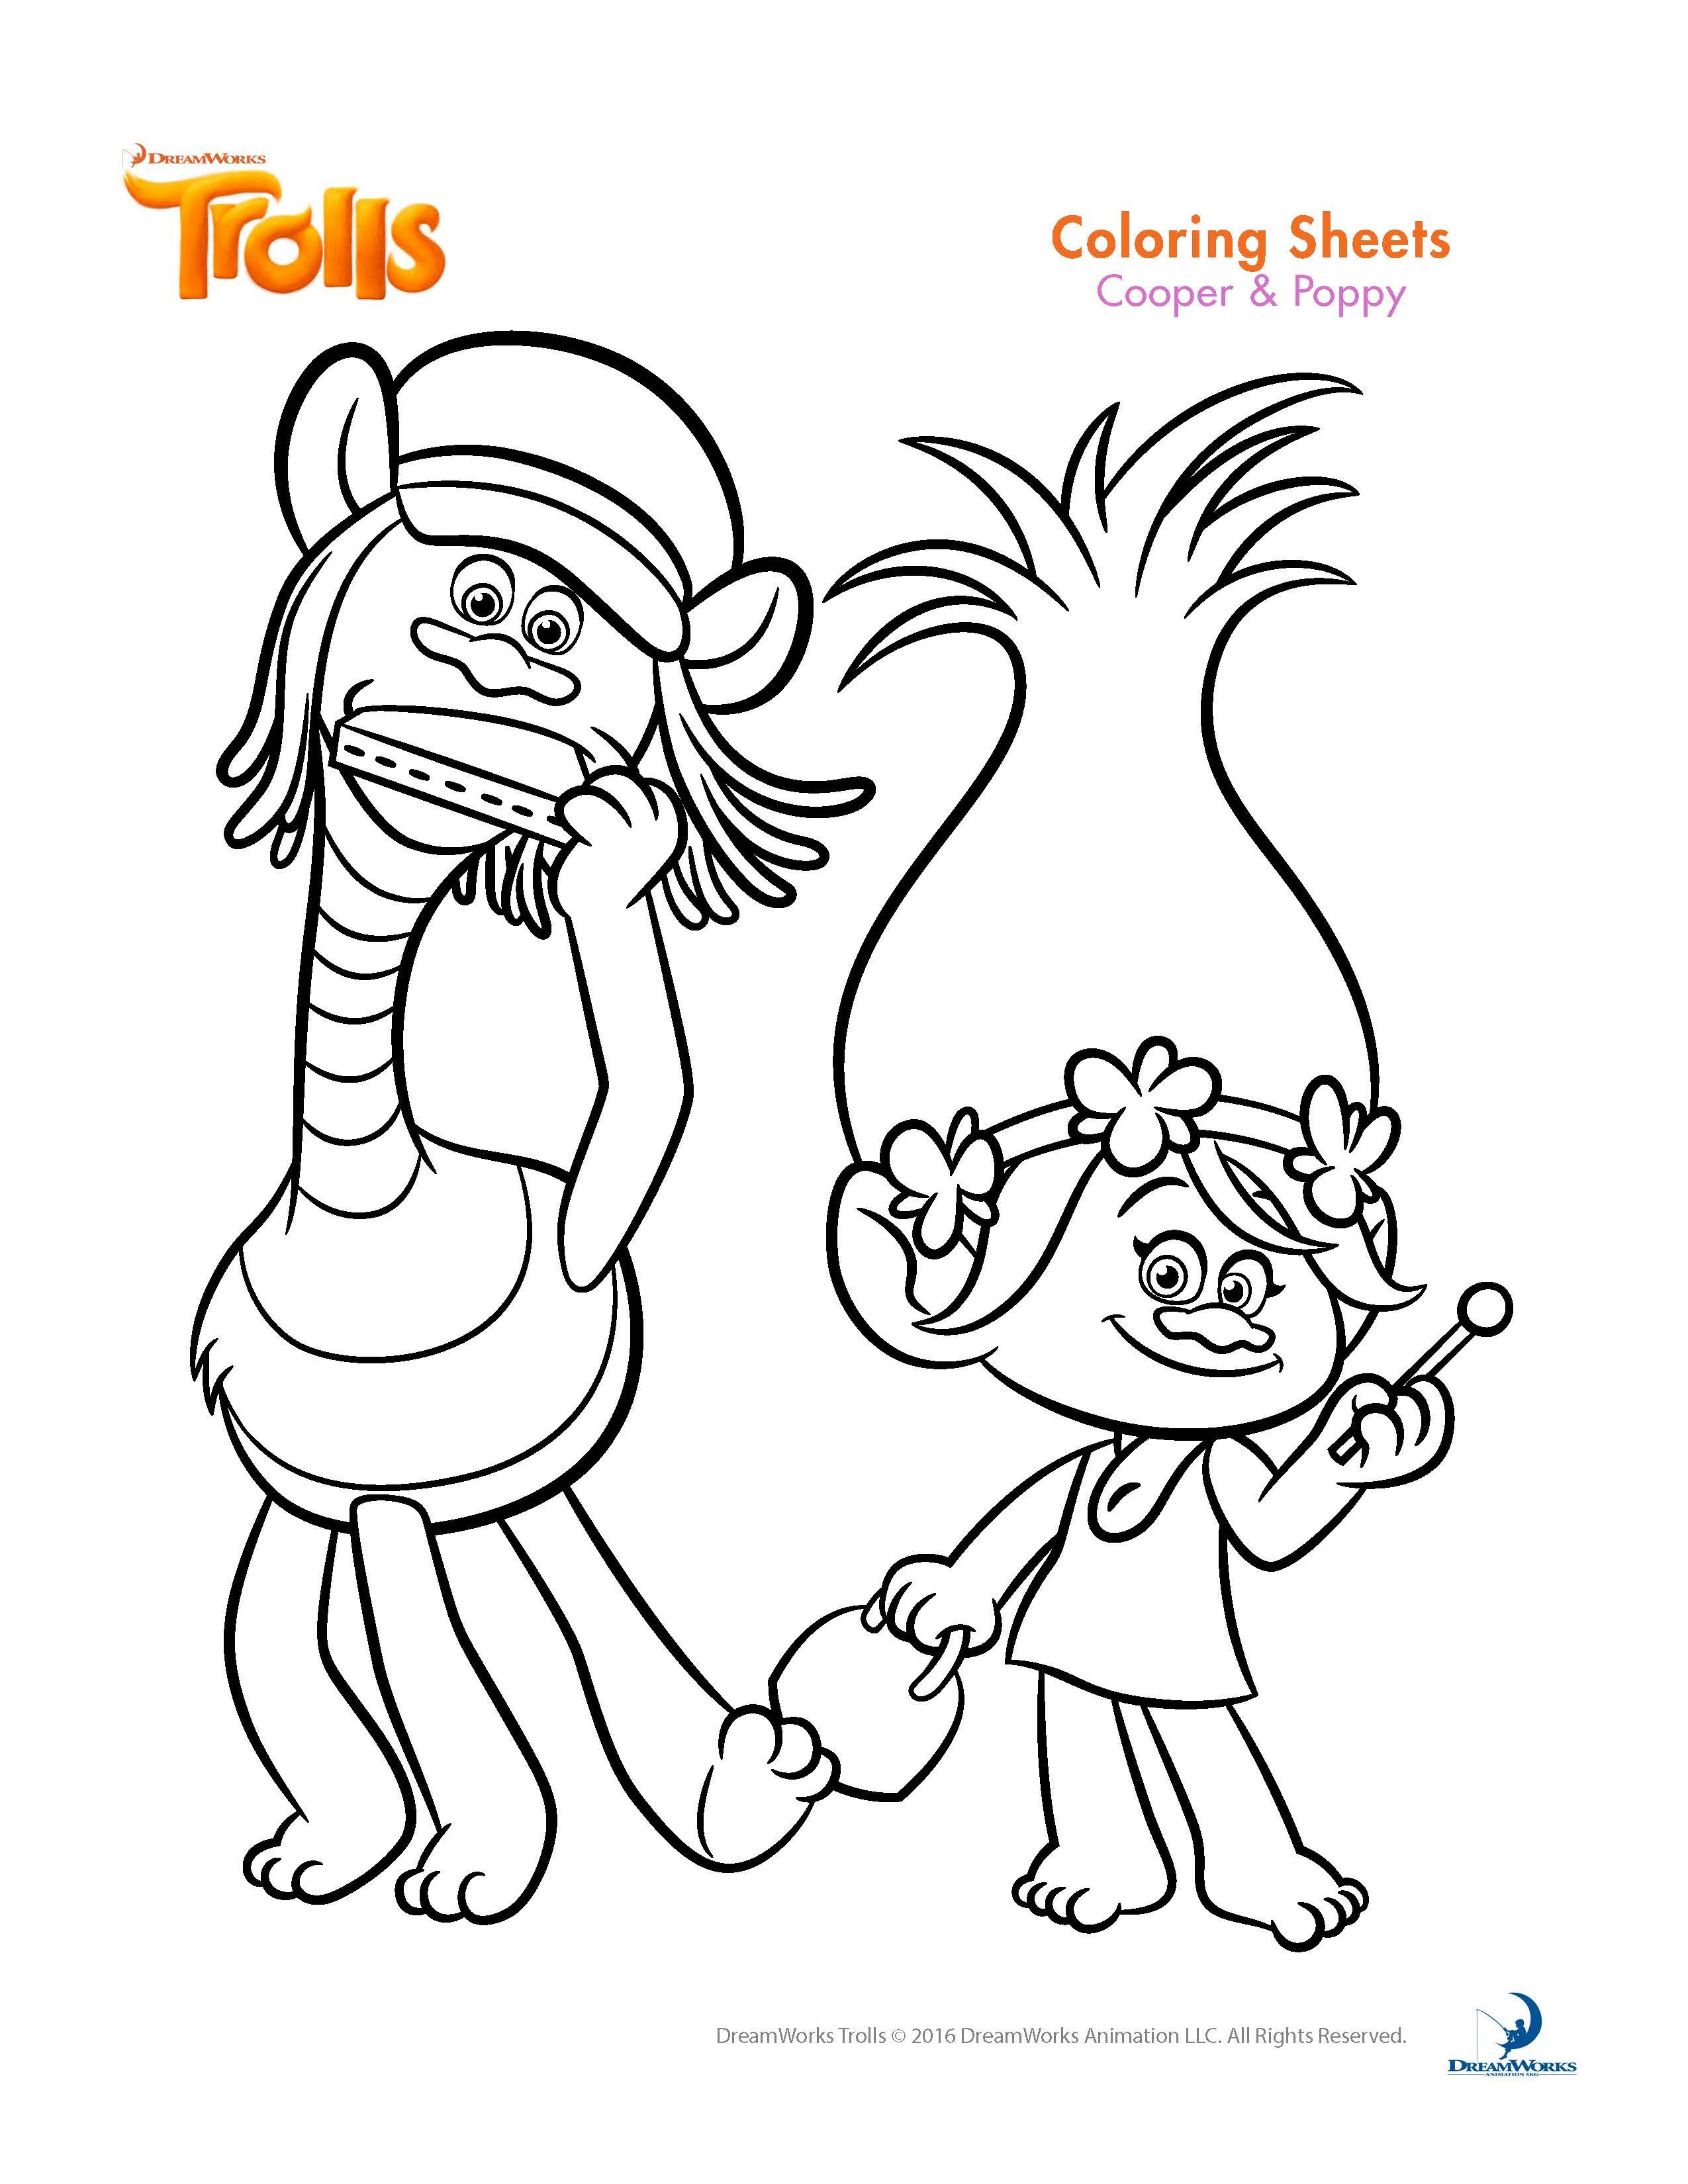 Trolls Coloring Pages And Printable Activity Sheets